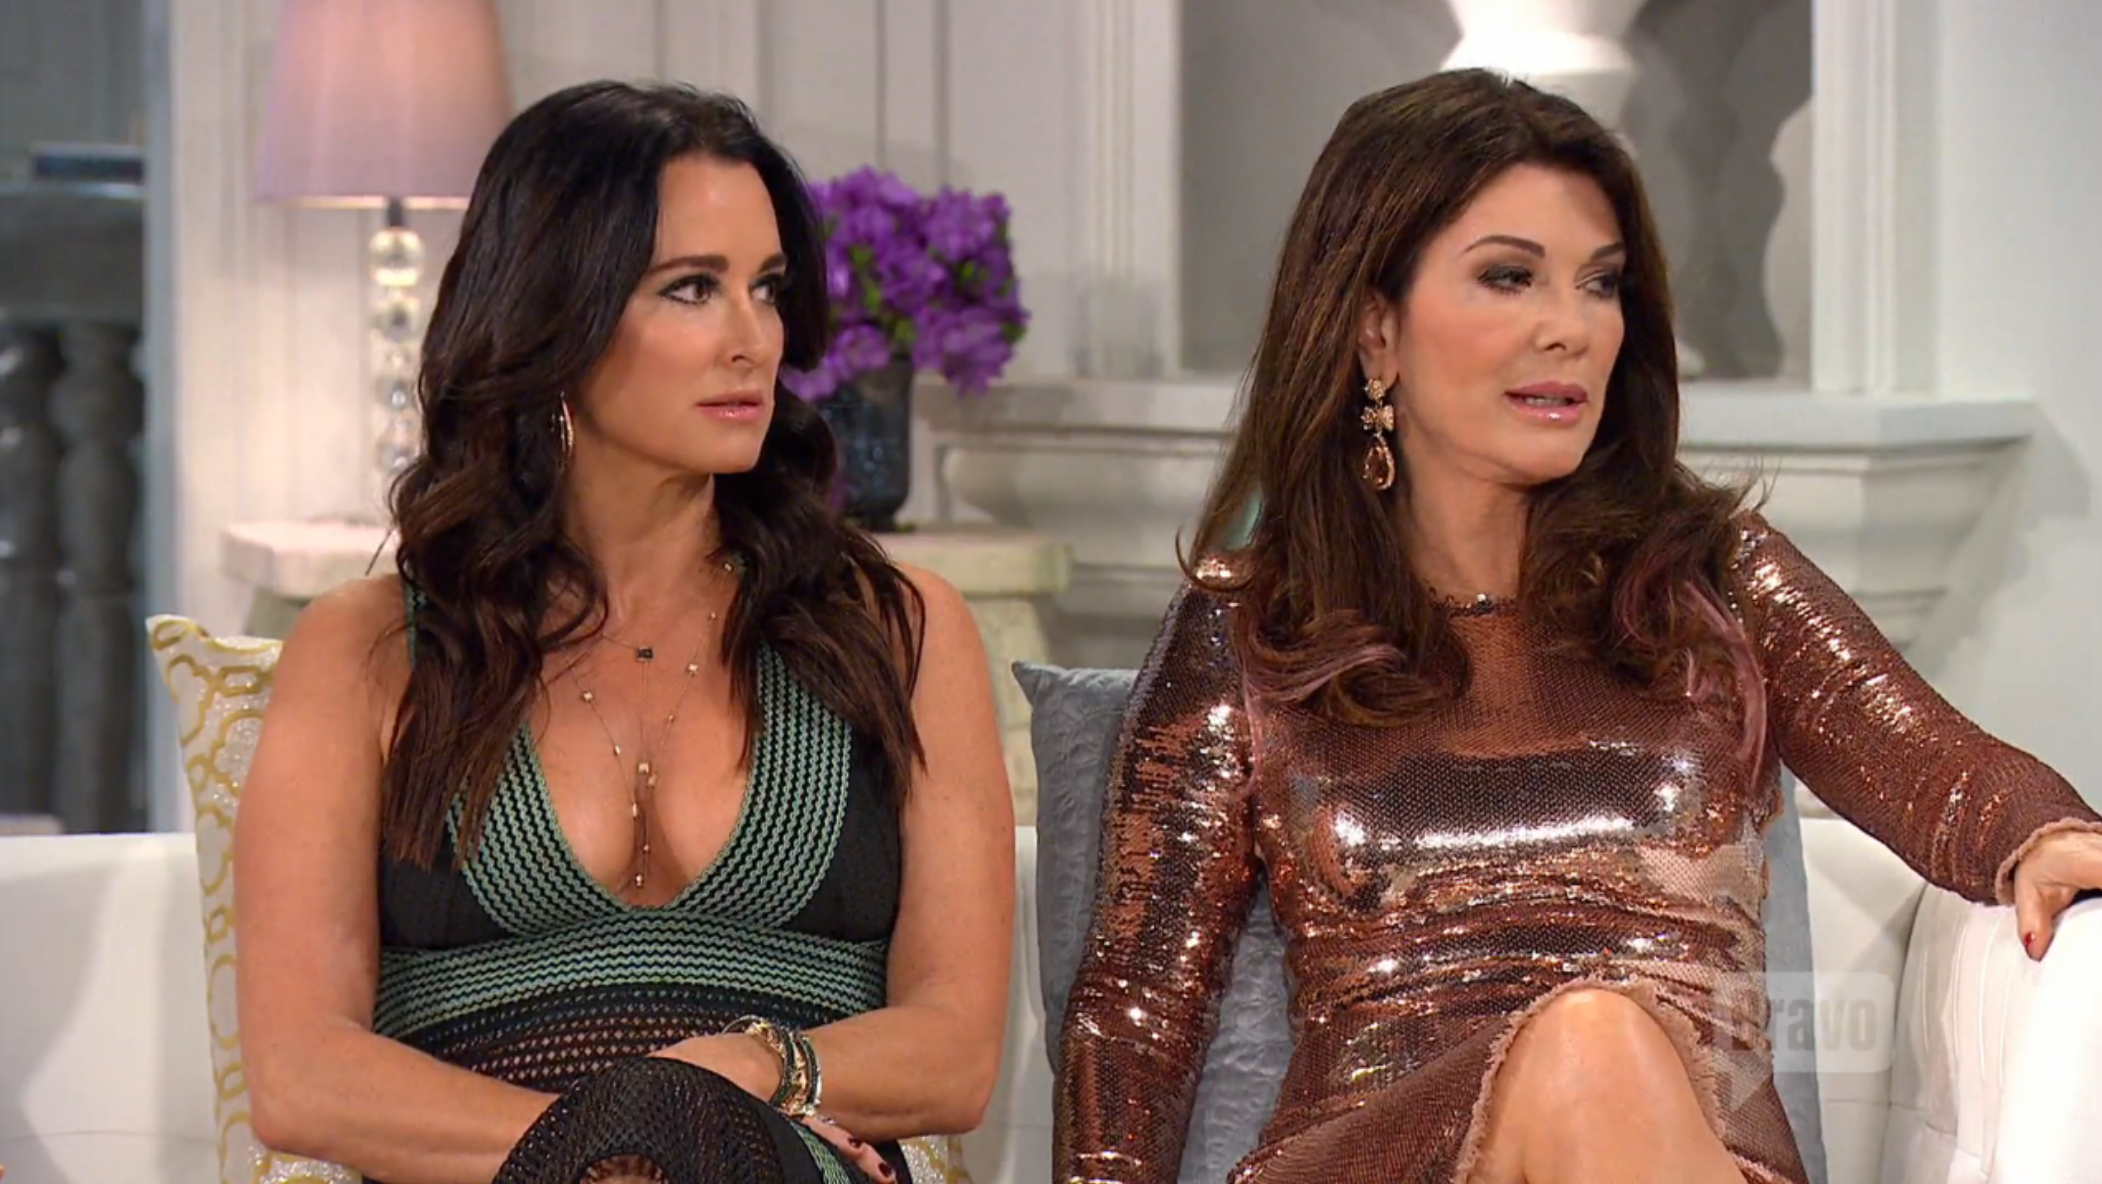 real-housewives-of-beverly-hills-kyle-richards-lisa-vanderpump